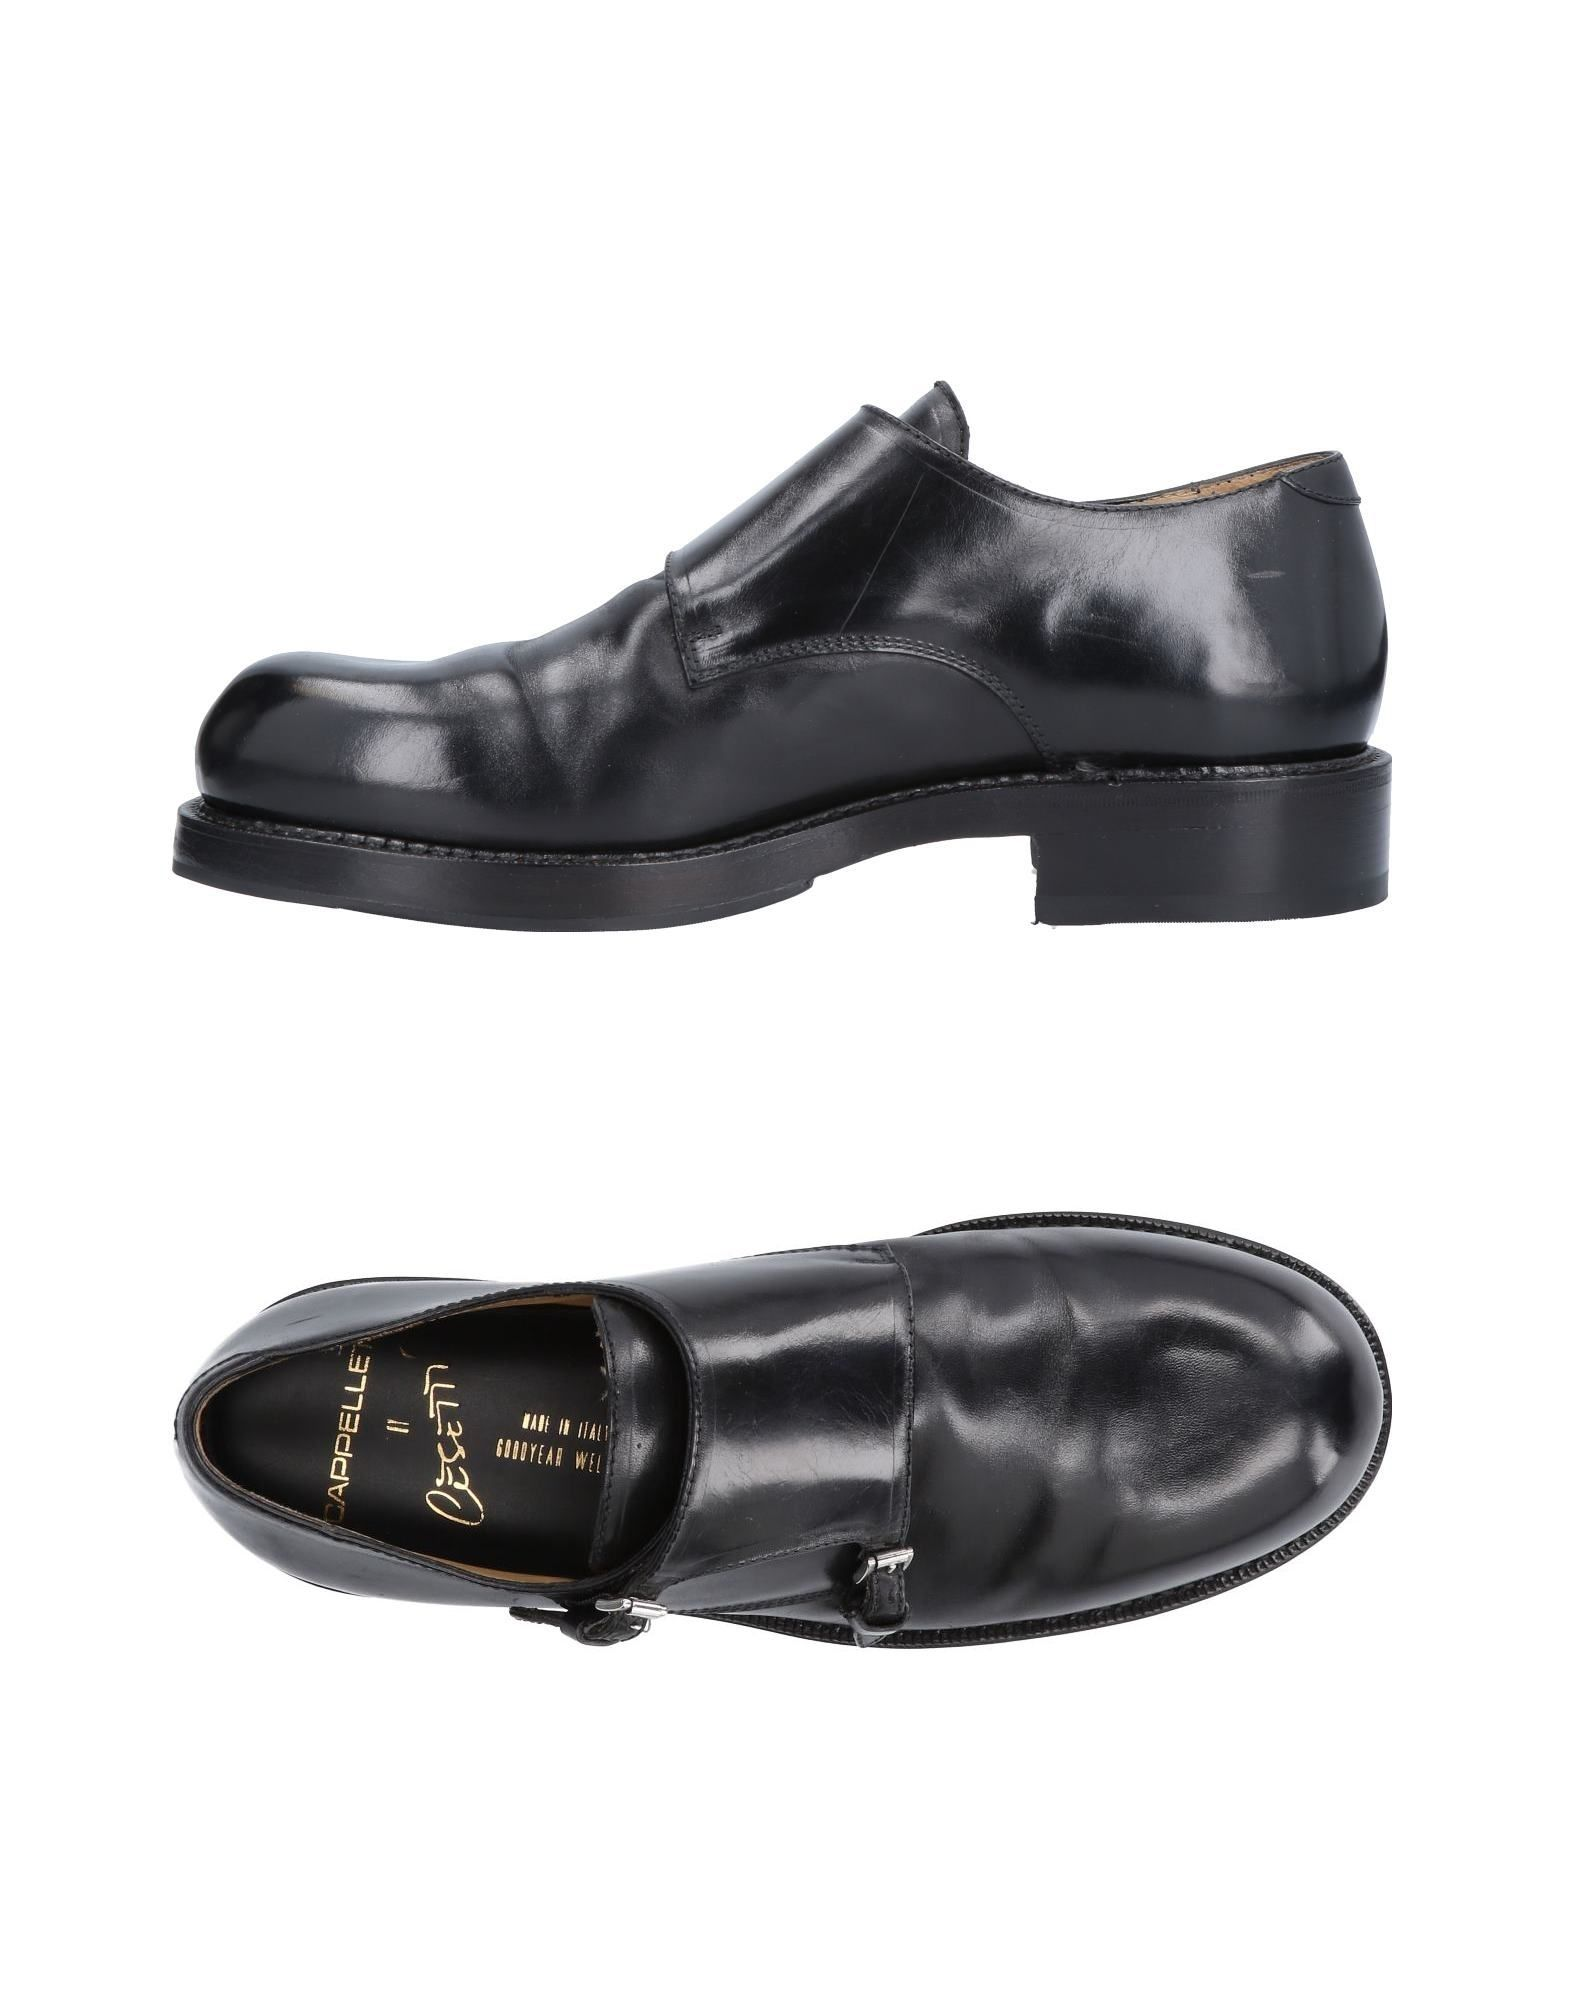 CAPPELLETTI Loafers in Black